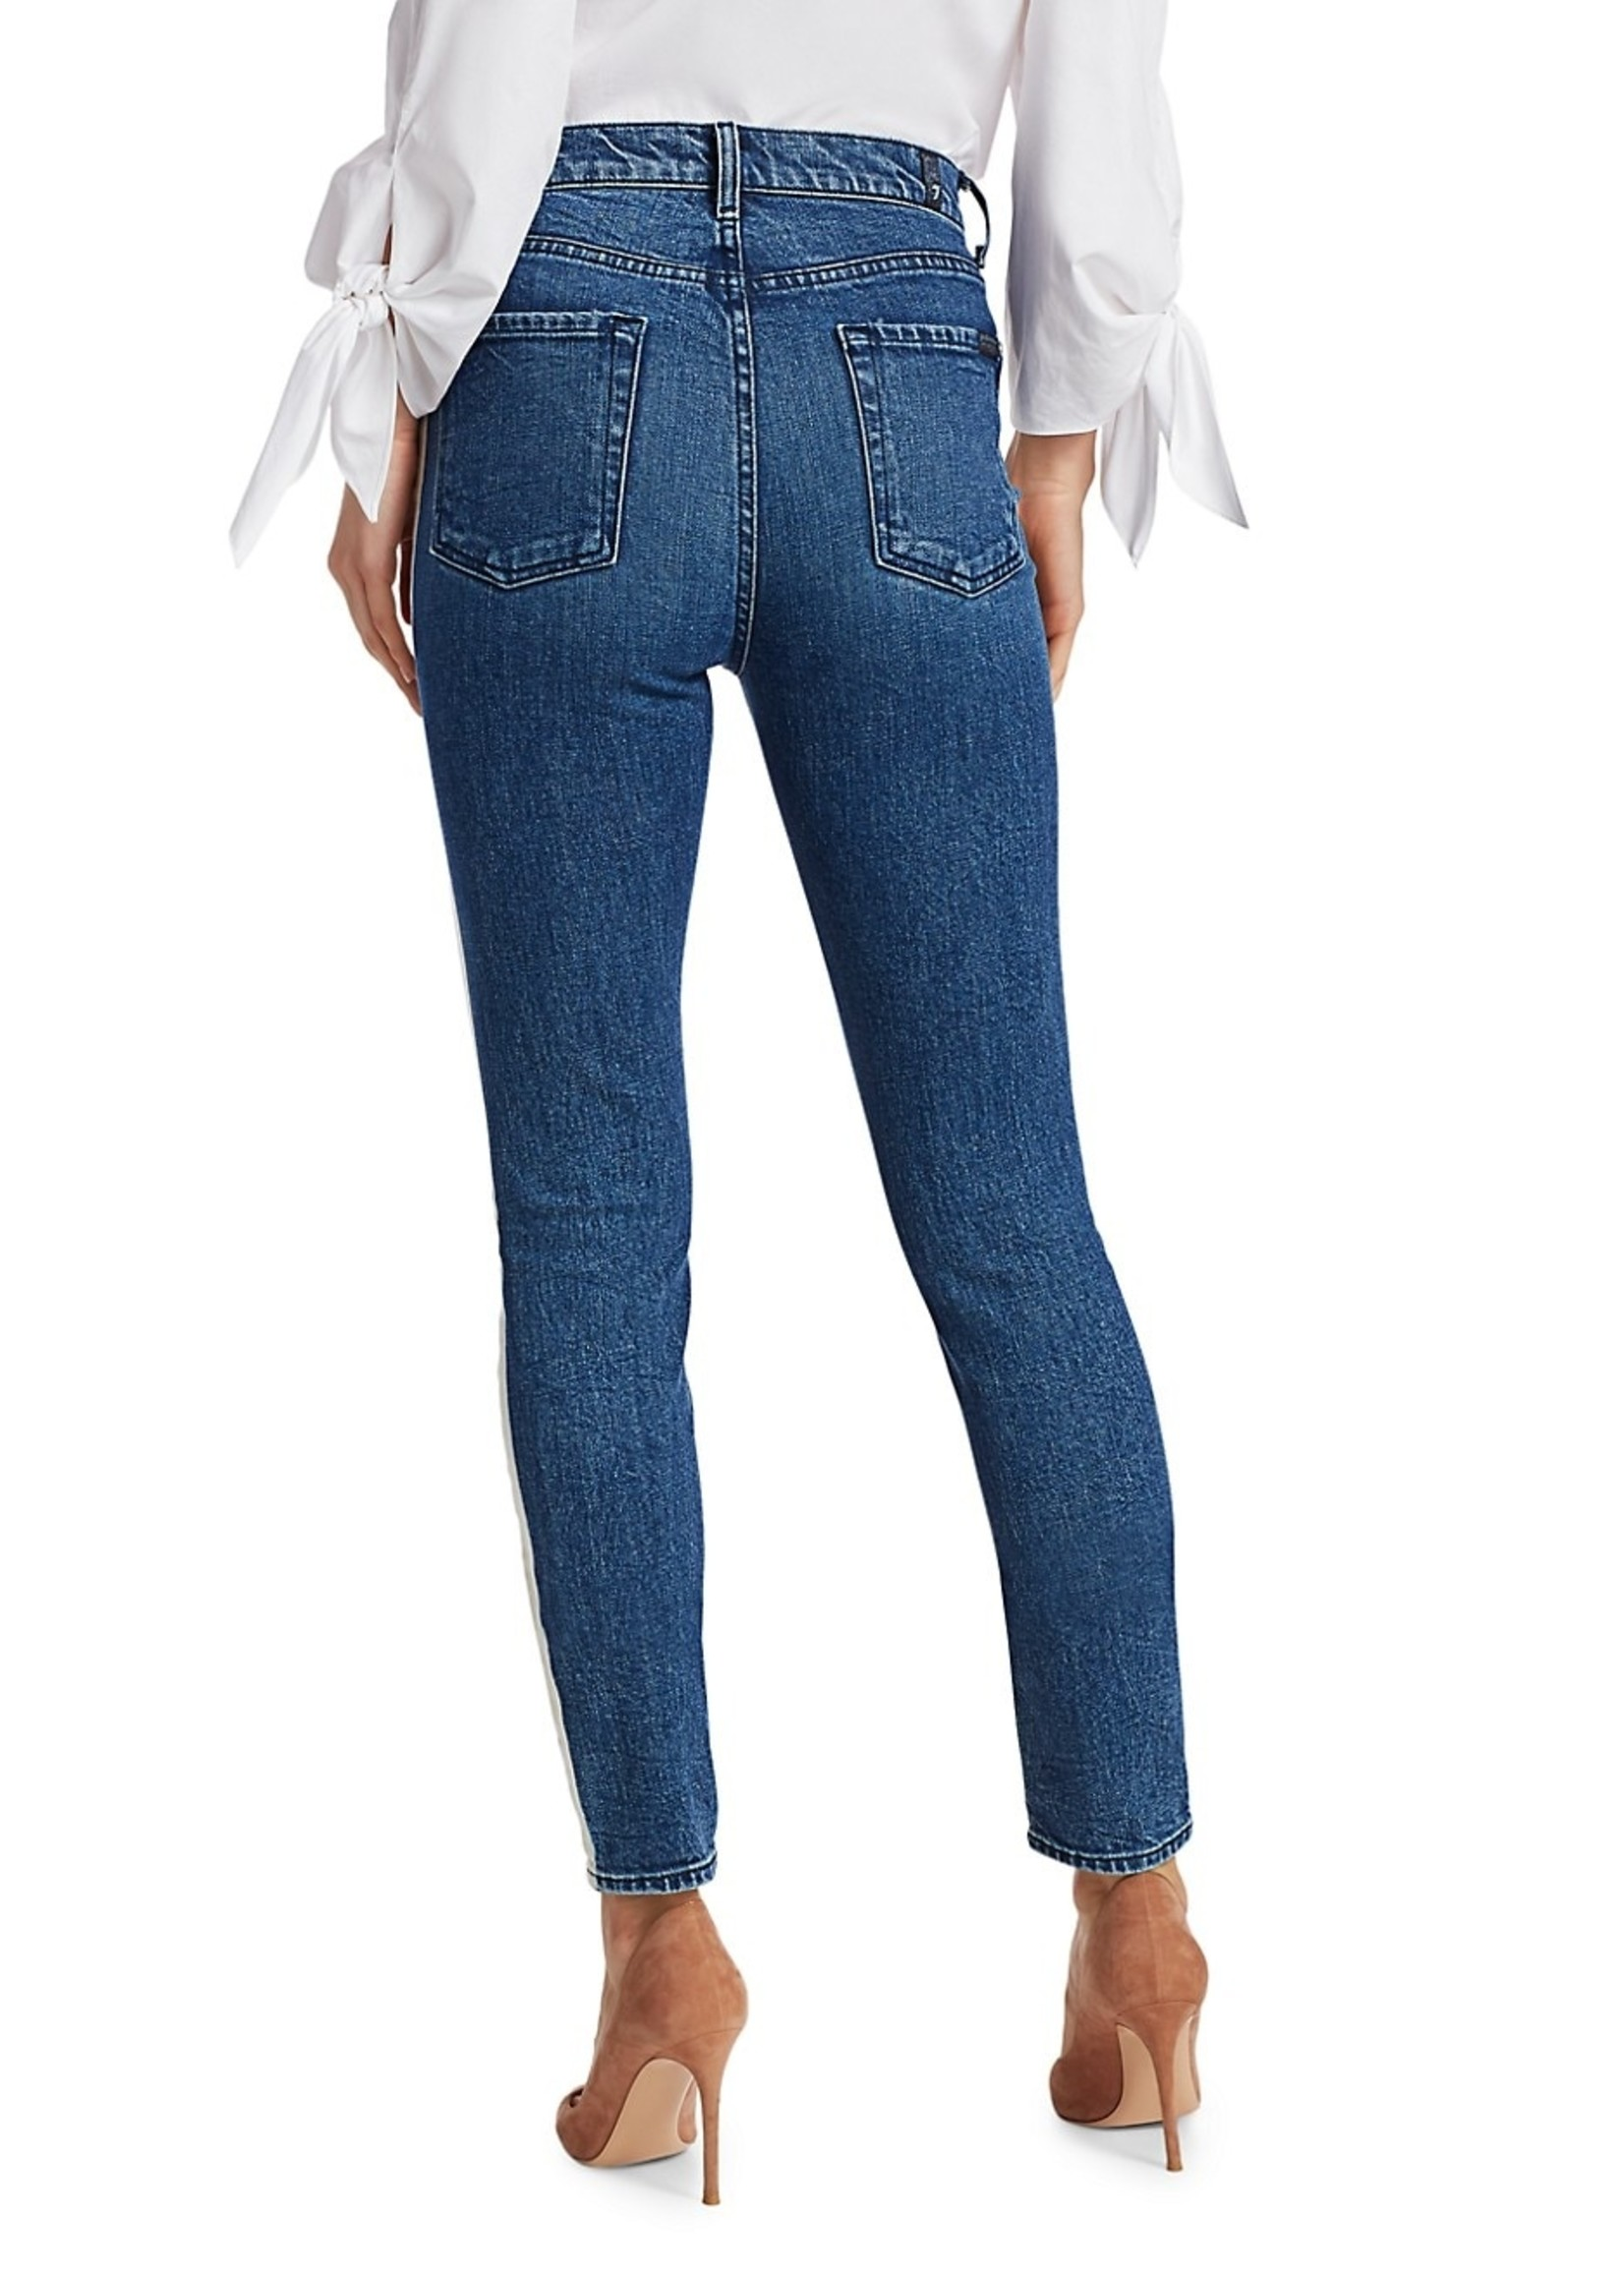 7 for all mankind Skinny High Waisted Striped Jean